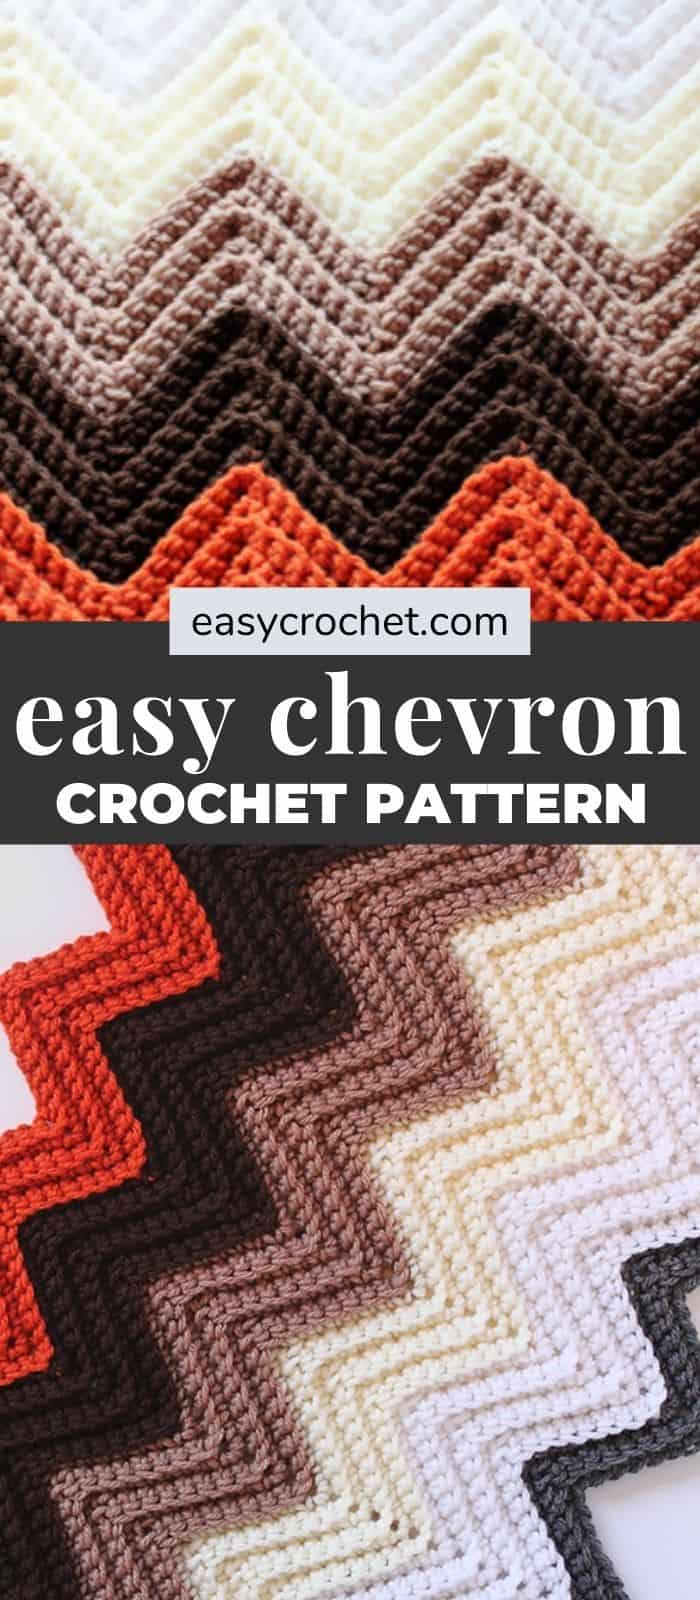 Free Chevron Crochet Blanket Pattern by Easy Crochet - Easy to make crochet chevron pattern! via @easycrochetcom